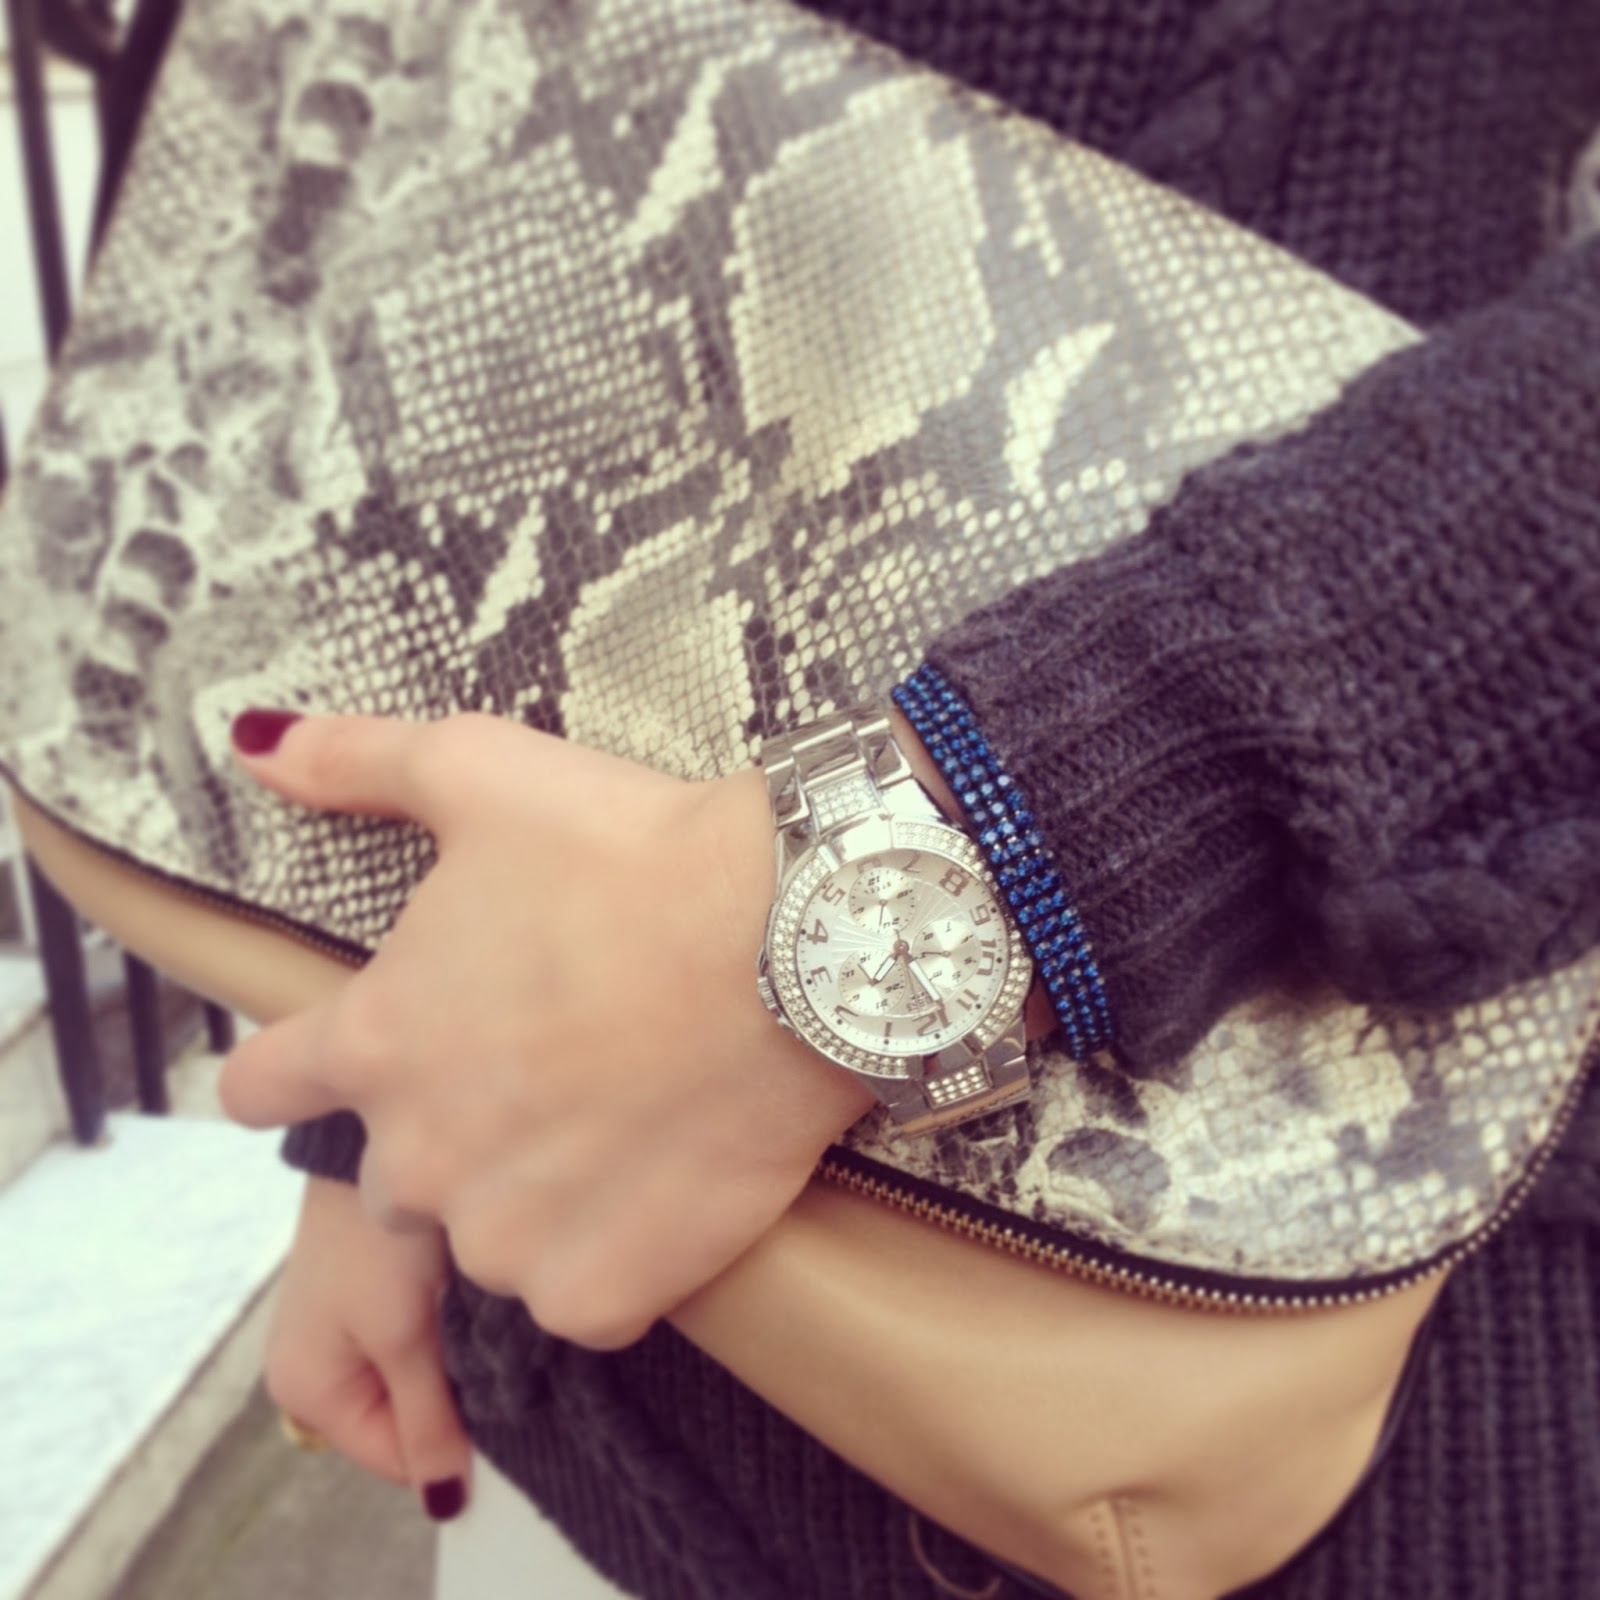 sneak print, sneak print clutch, guess, guess watch, swarovski, accessories, nails inc